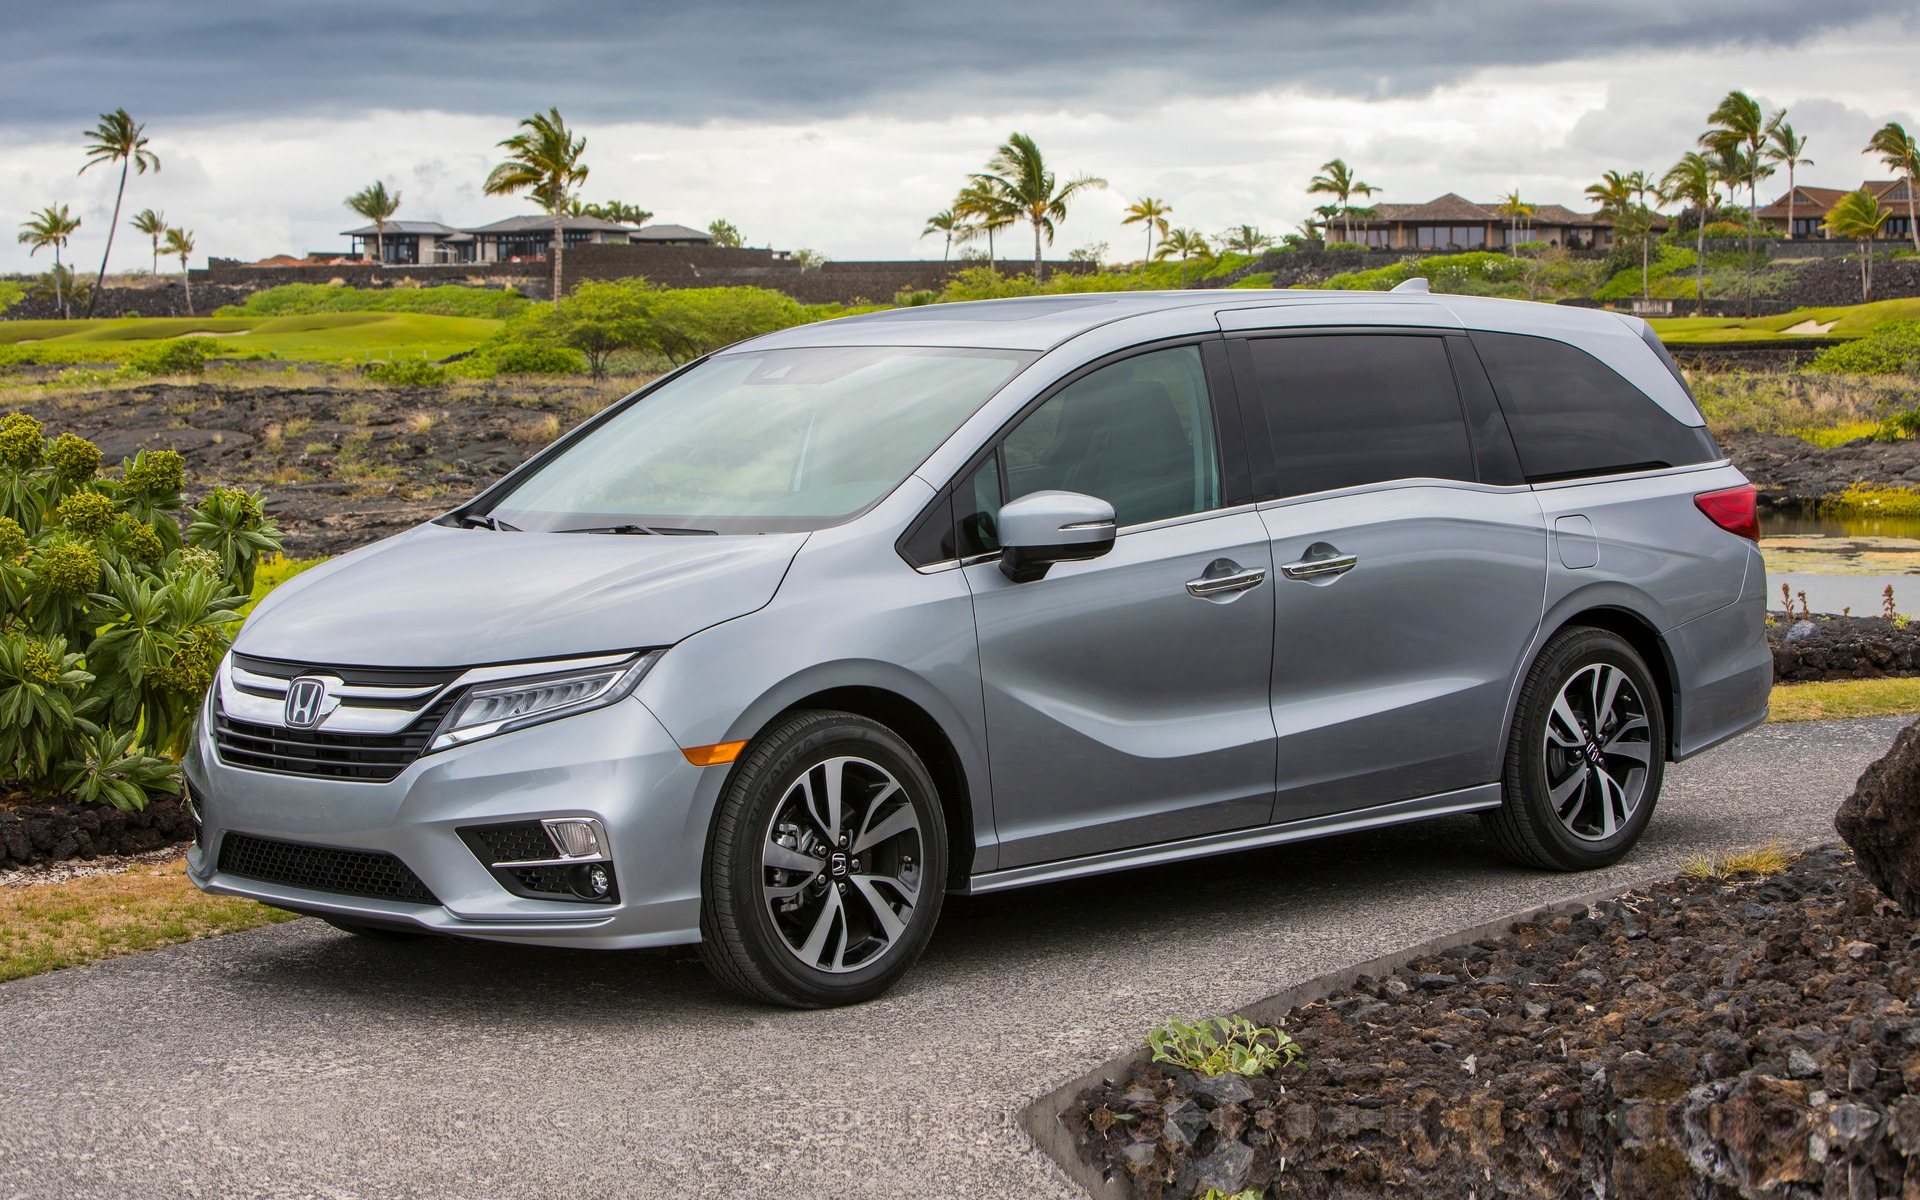 2018 Honda Odyssey News reviews picture galleries and videos